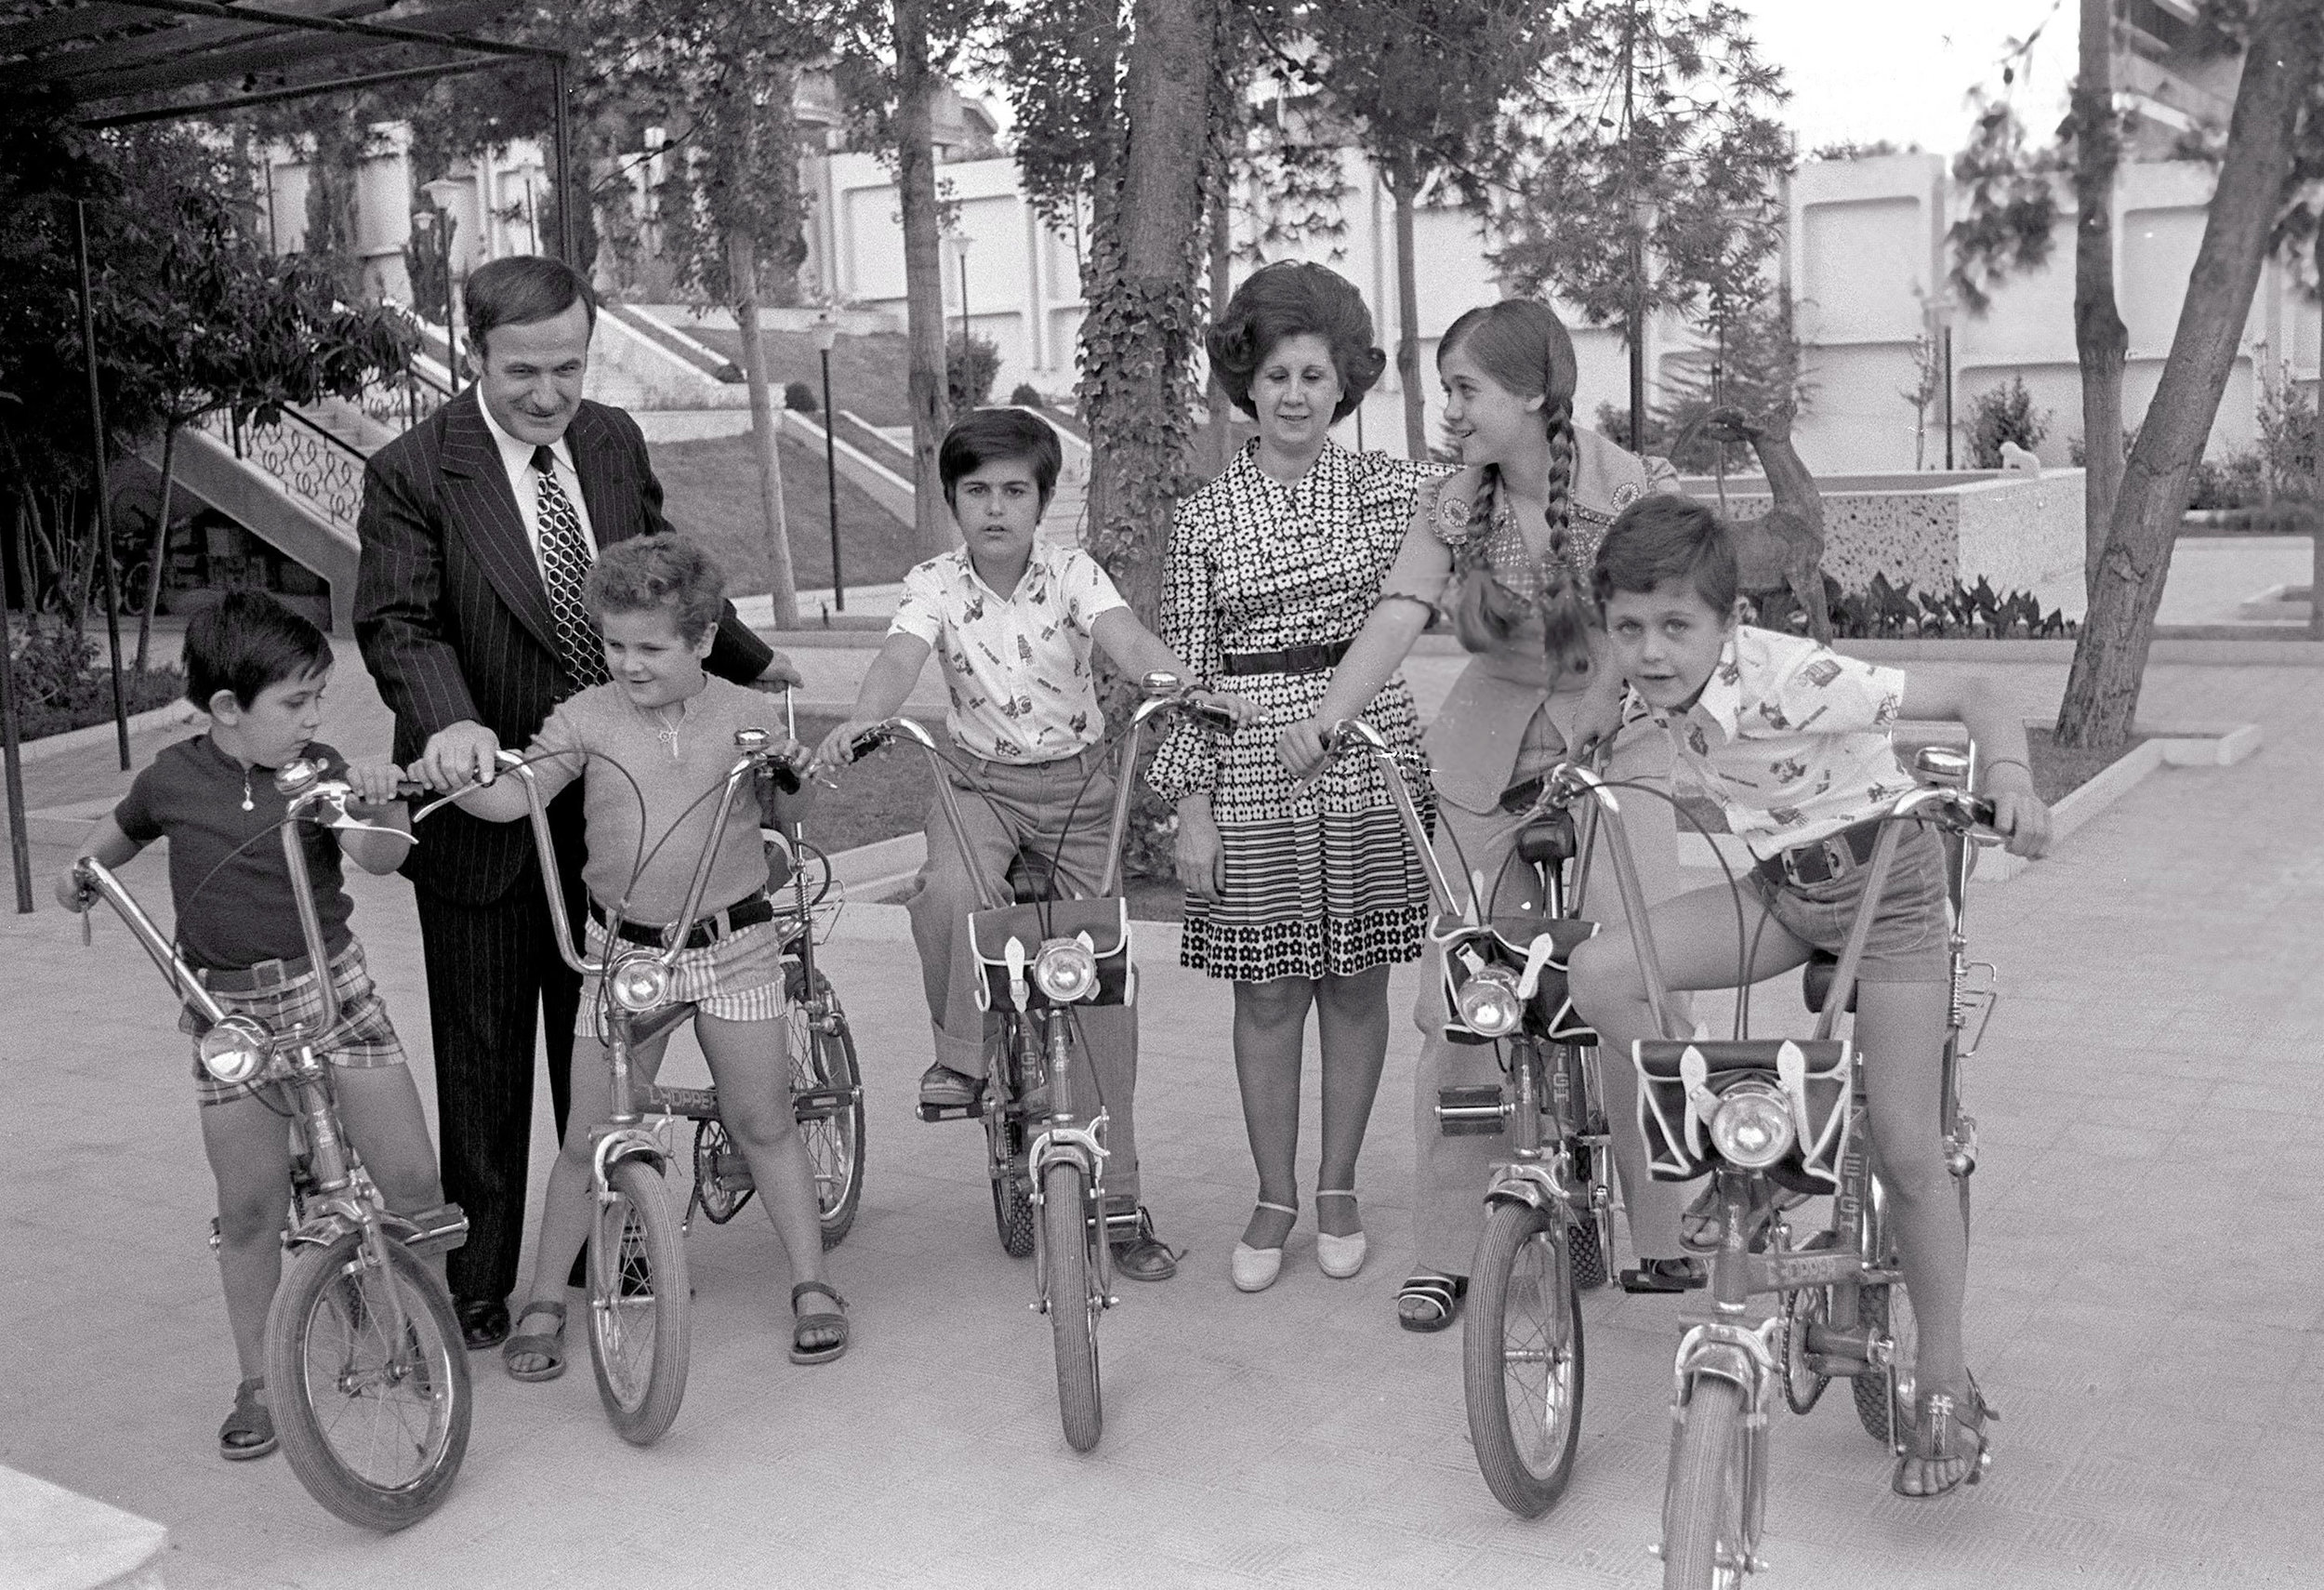 LS1441M Getty Assad family on bikes ref 1418216.jpg